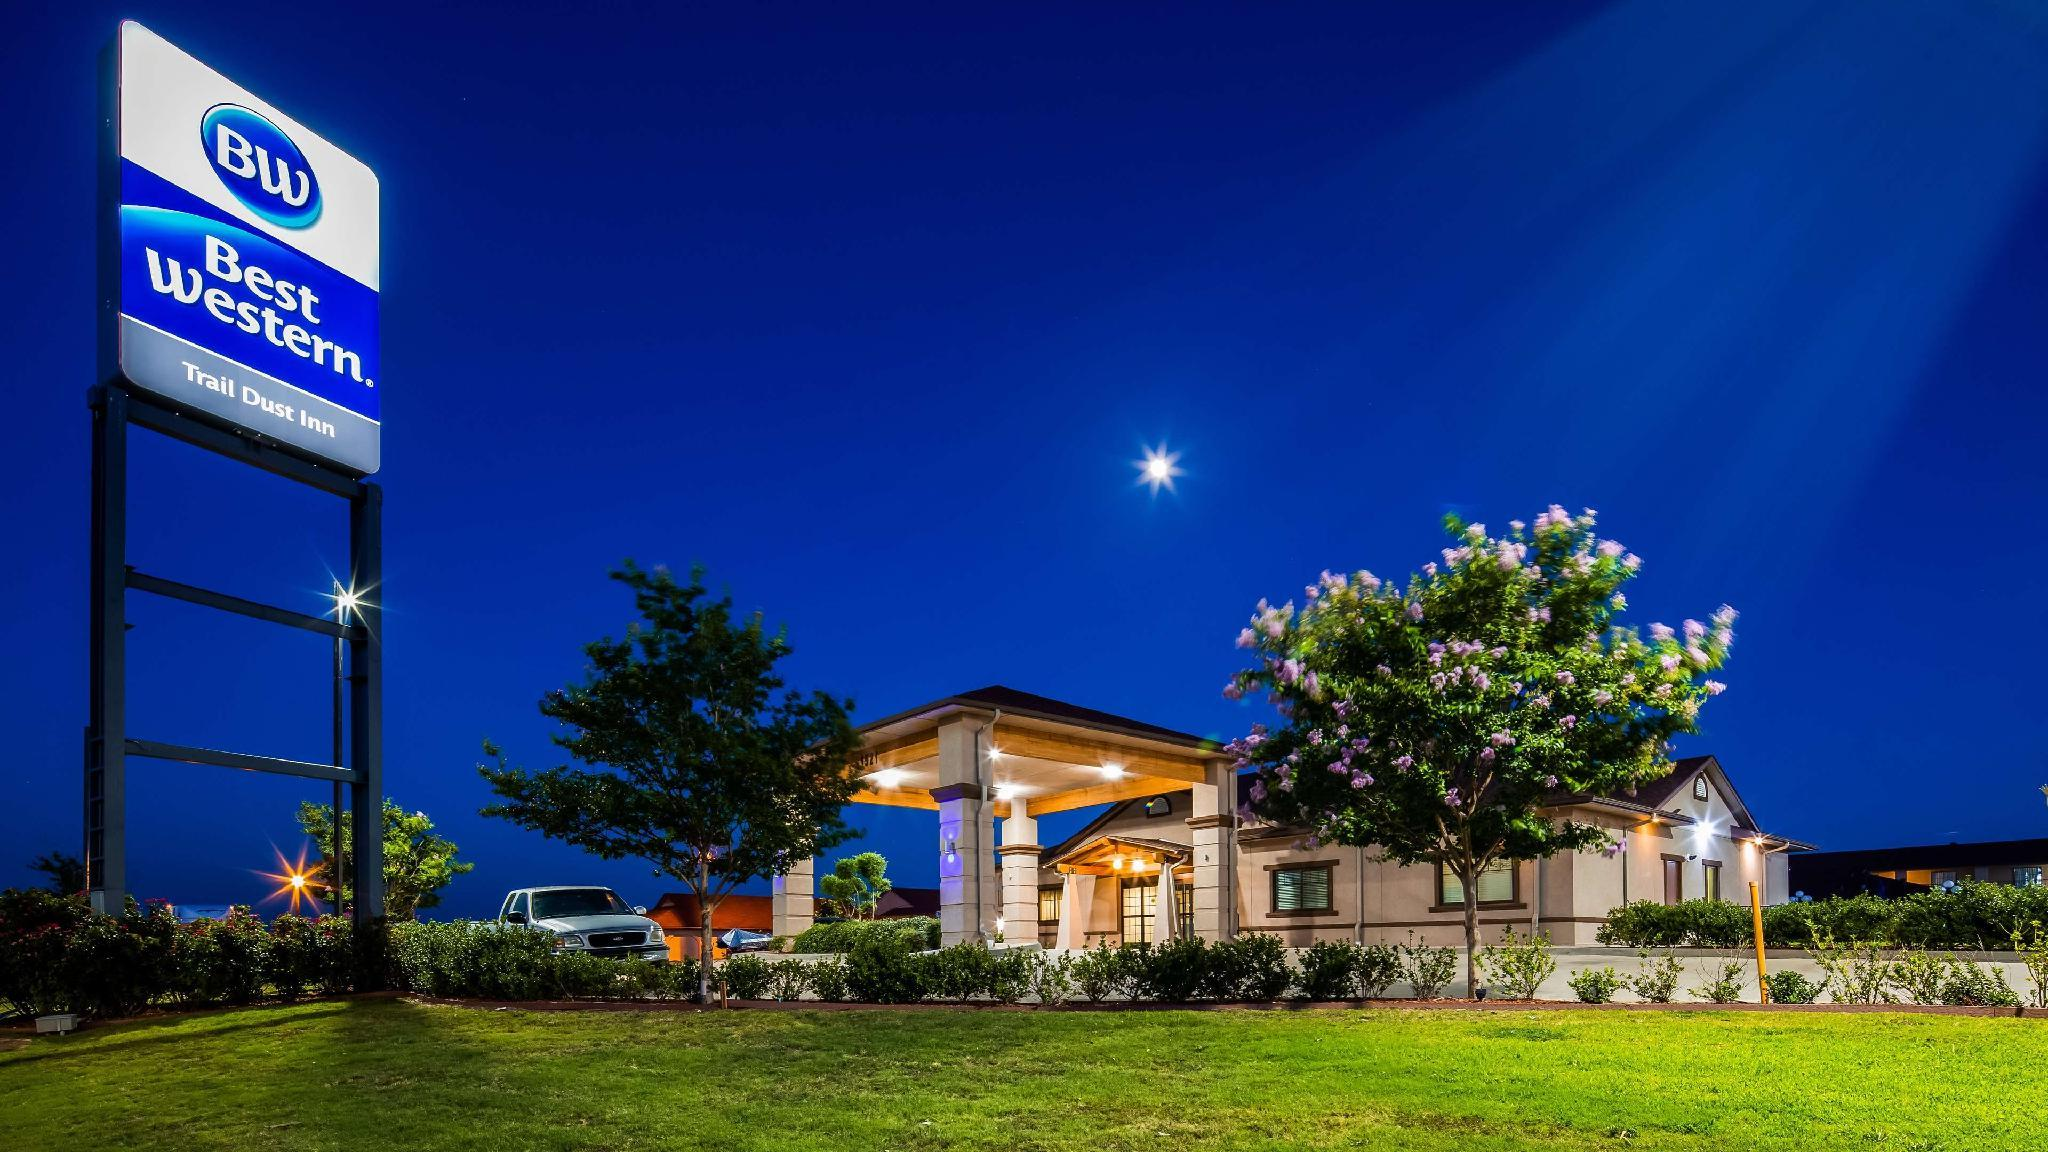 Best Western Trail Dust Inn And Suites